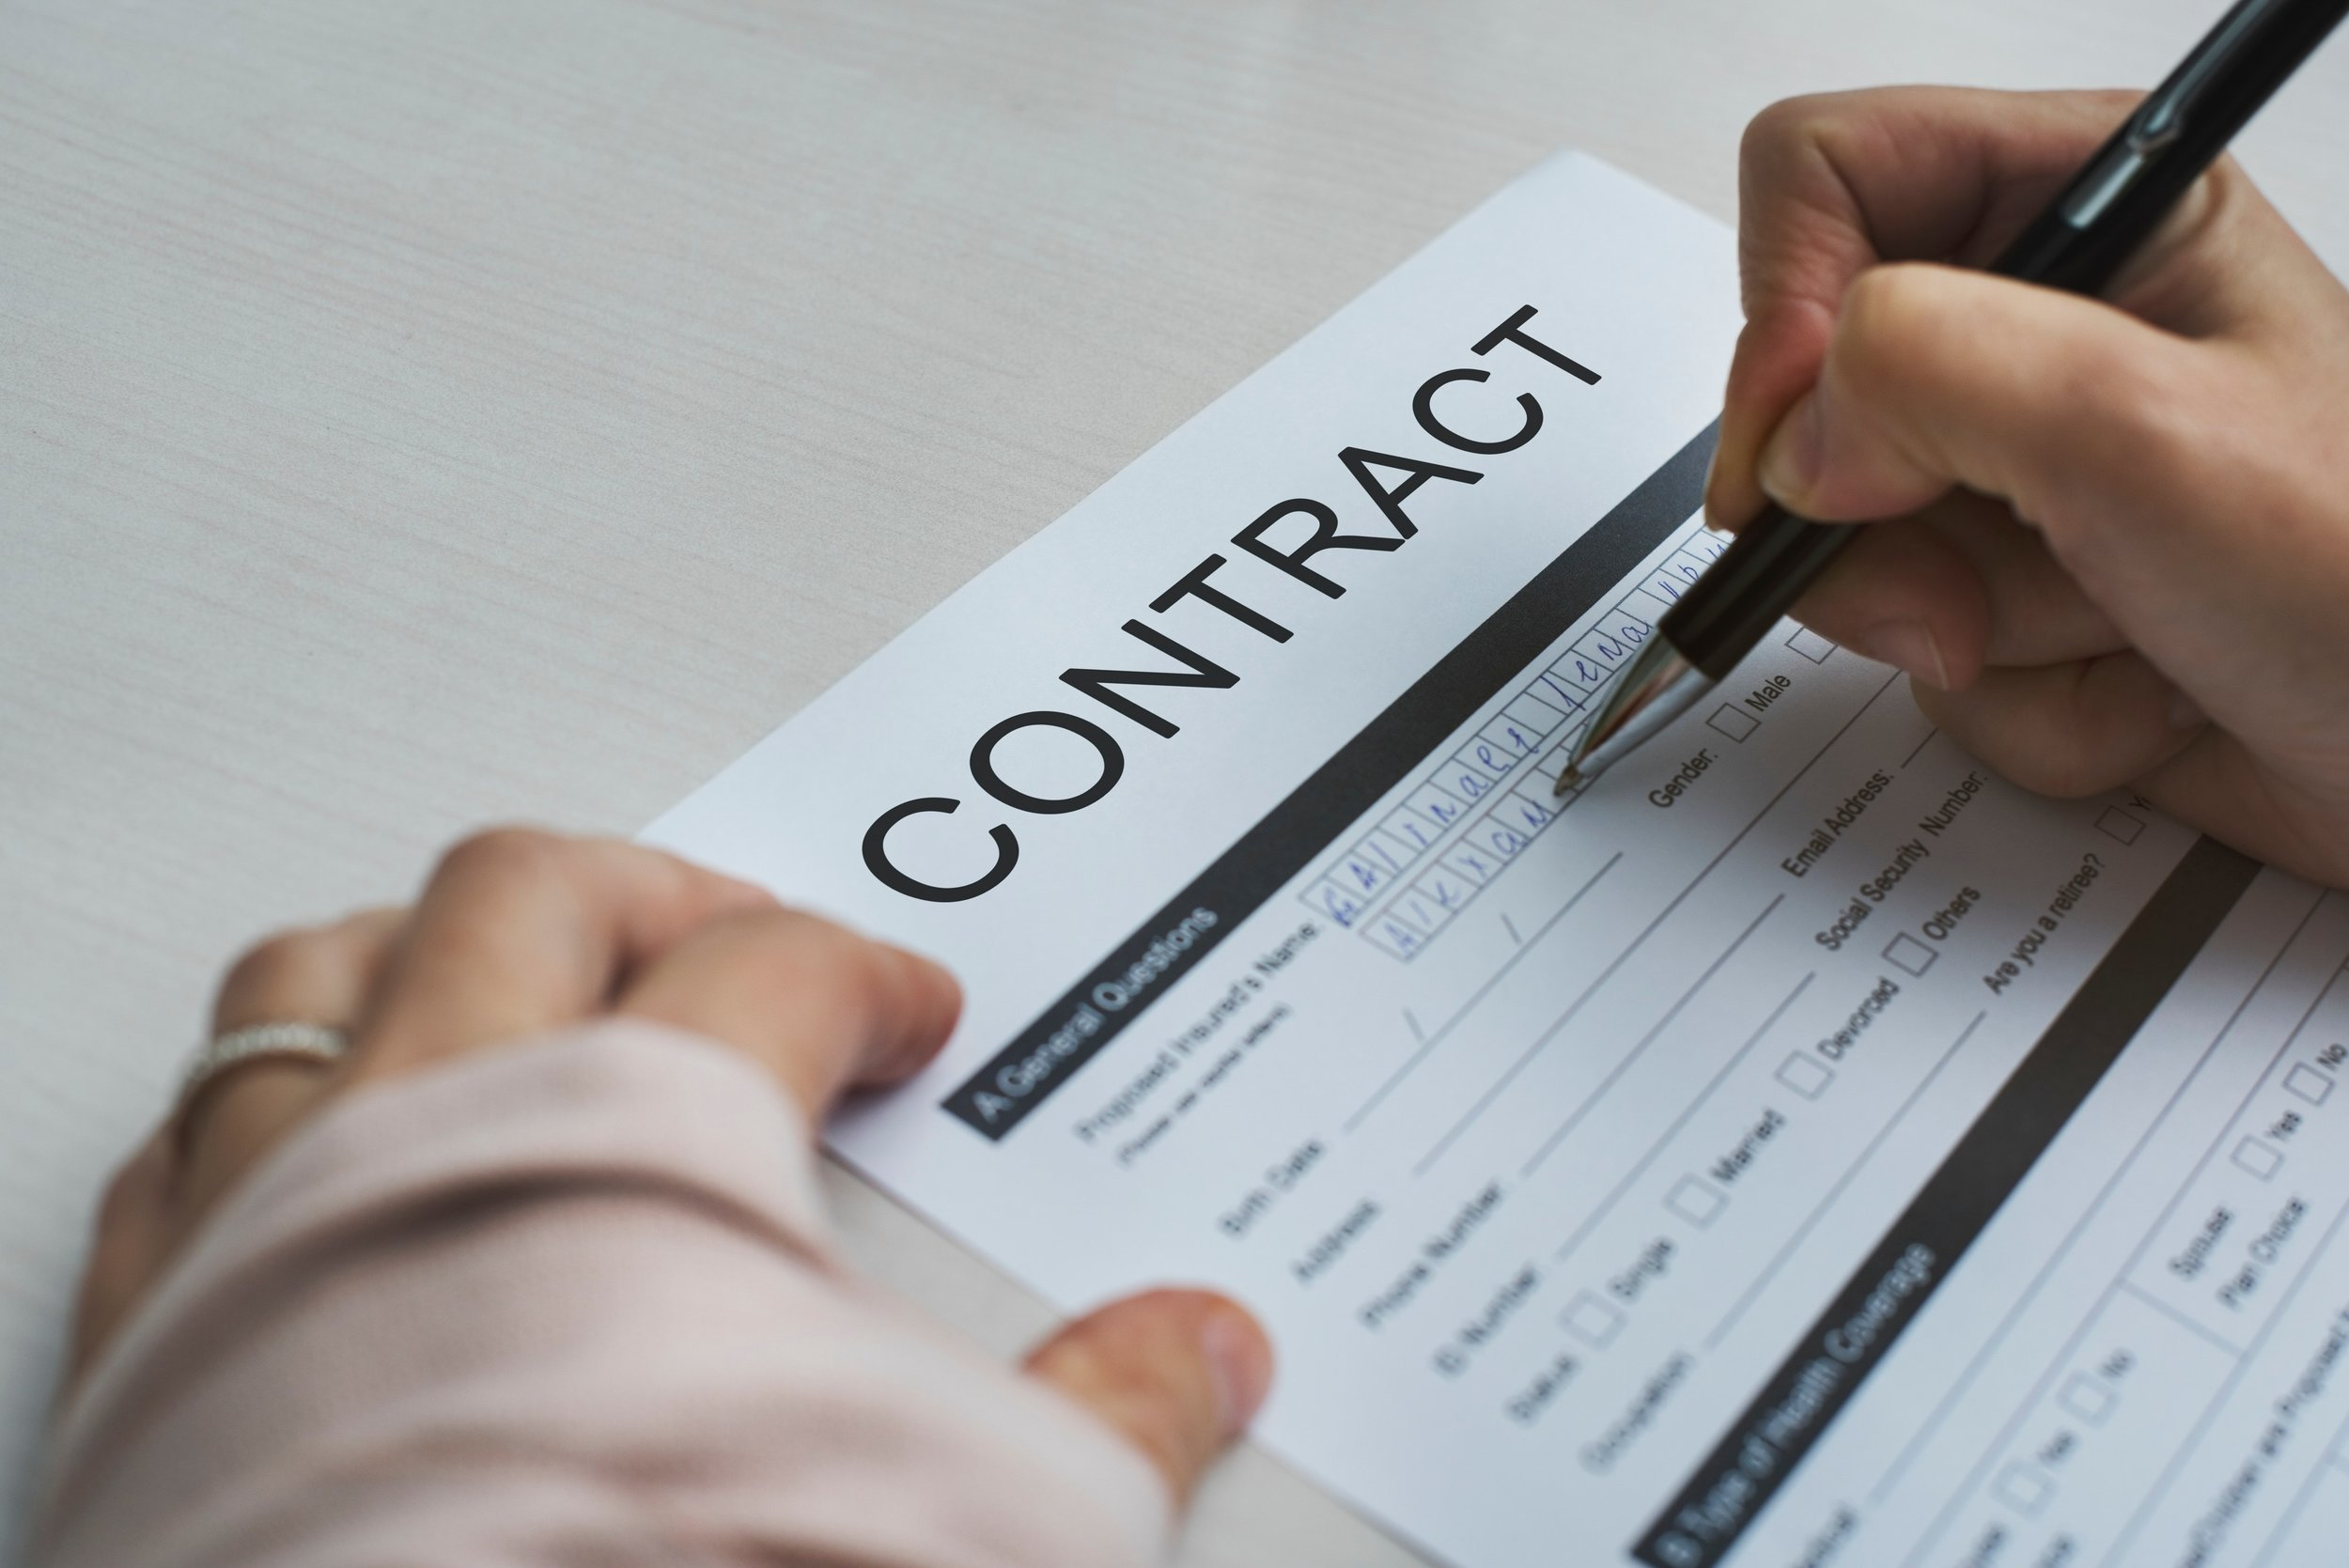 Keep reading to know what to look for in the contract!